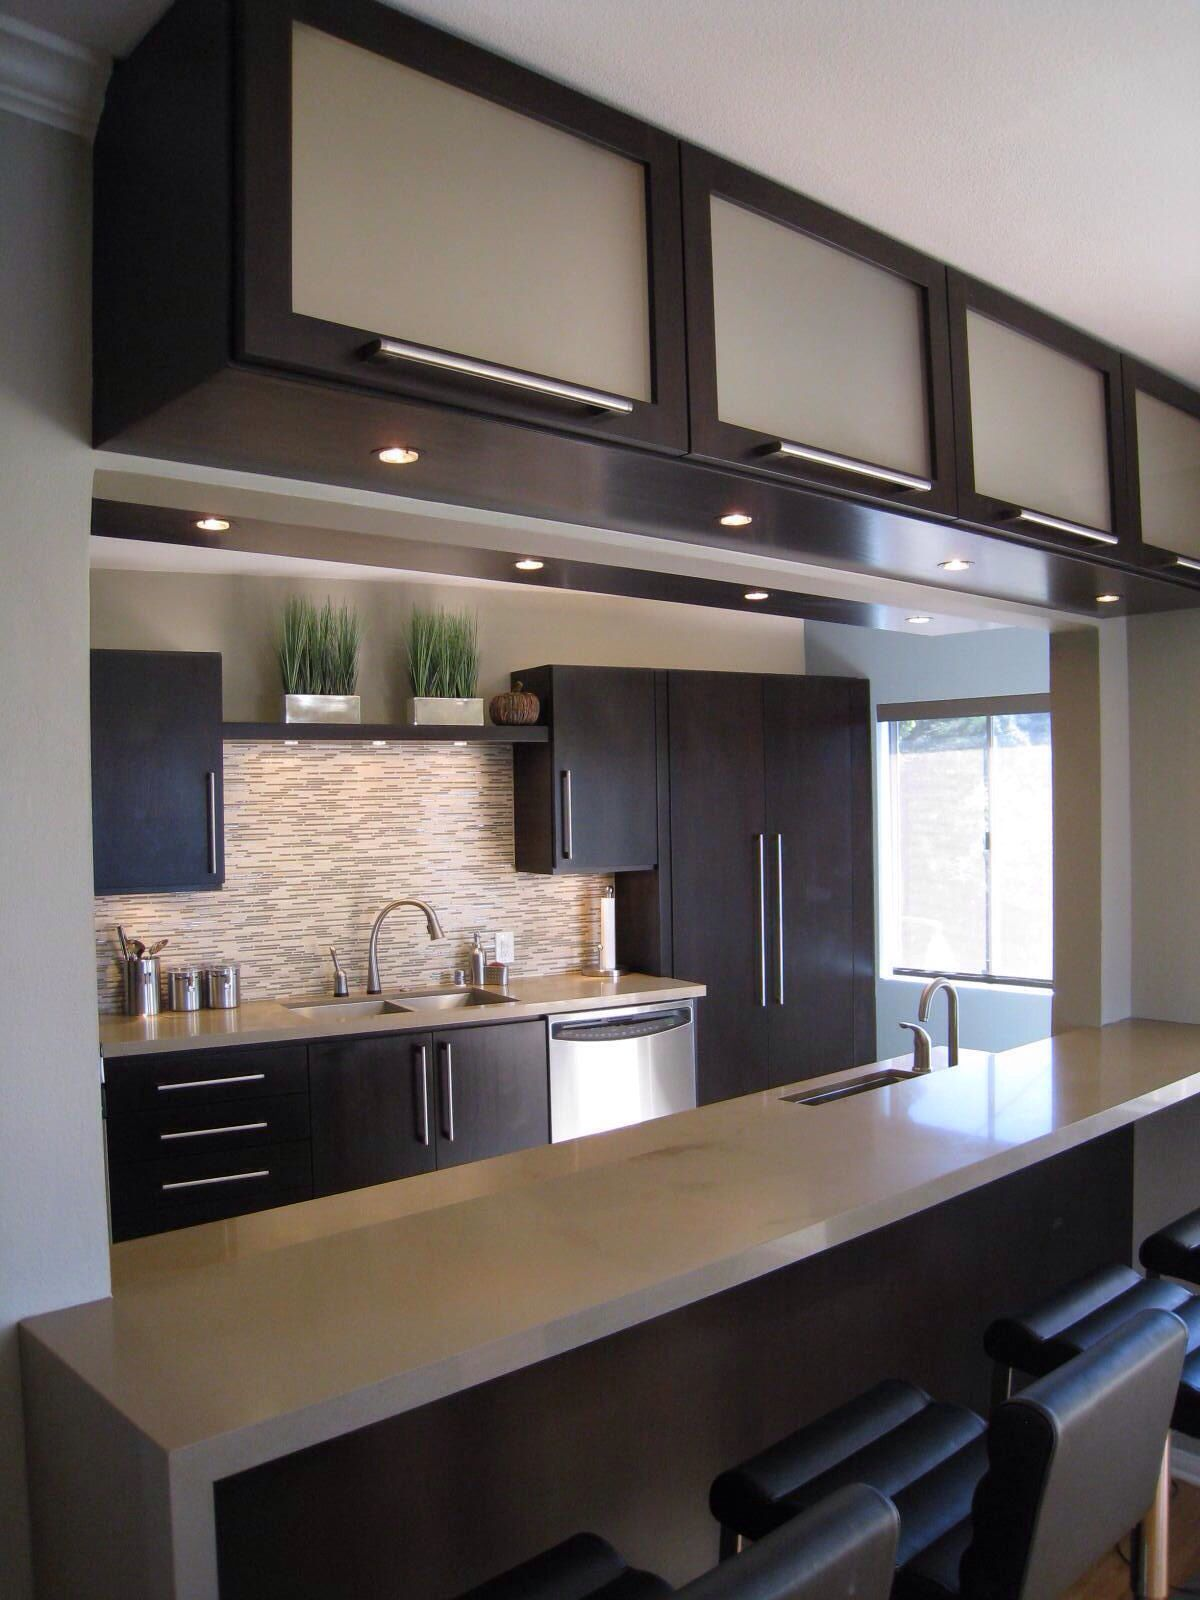 Modern Kitchens Pictures Organizing Kitchen Cabinets Contemporary For A Posh And Sleek Finish